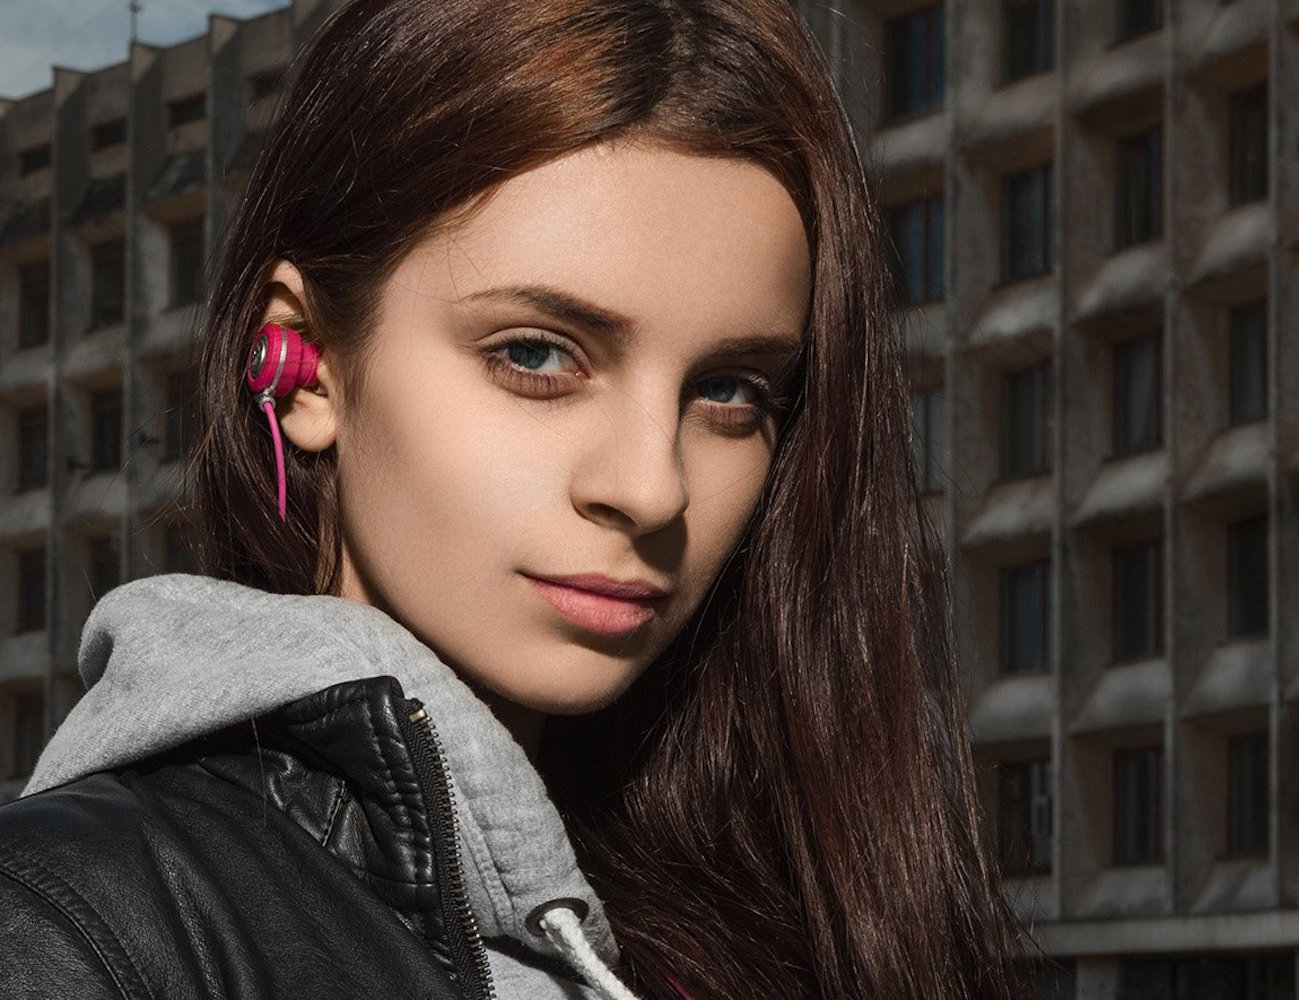 Kameleon Series Pink Bluetooth Earbuds by NOIZY BRANDS